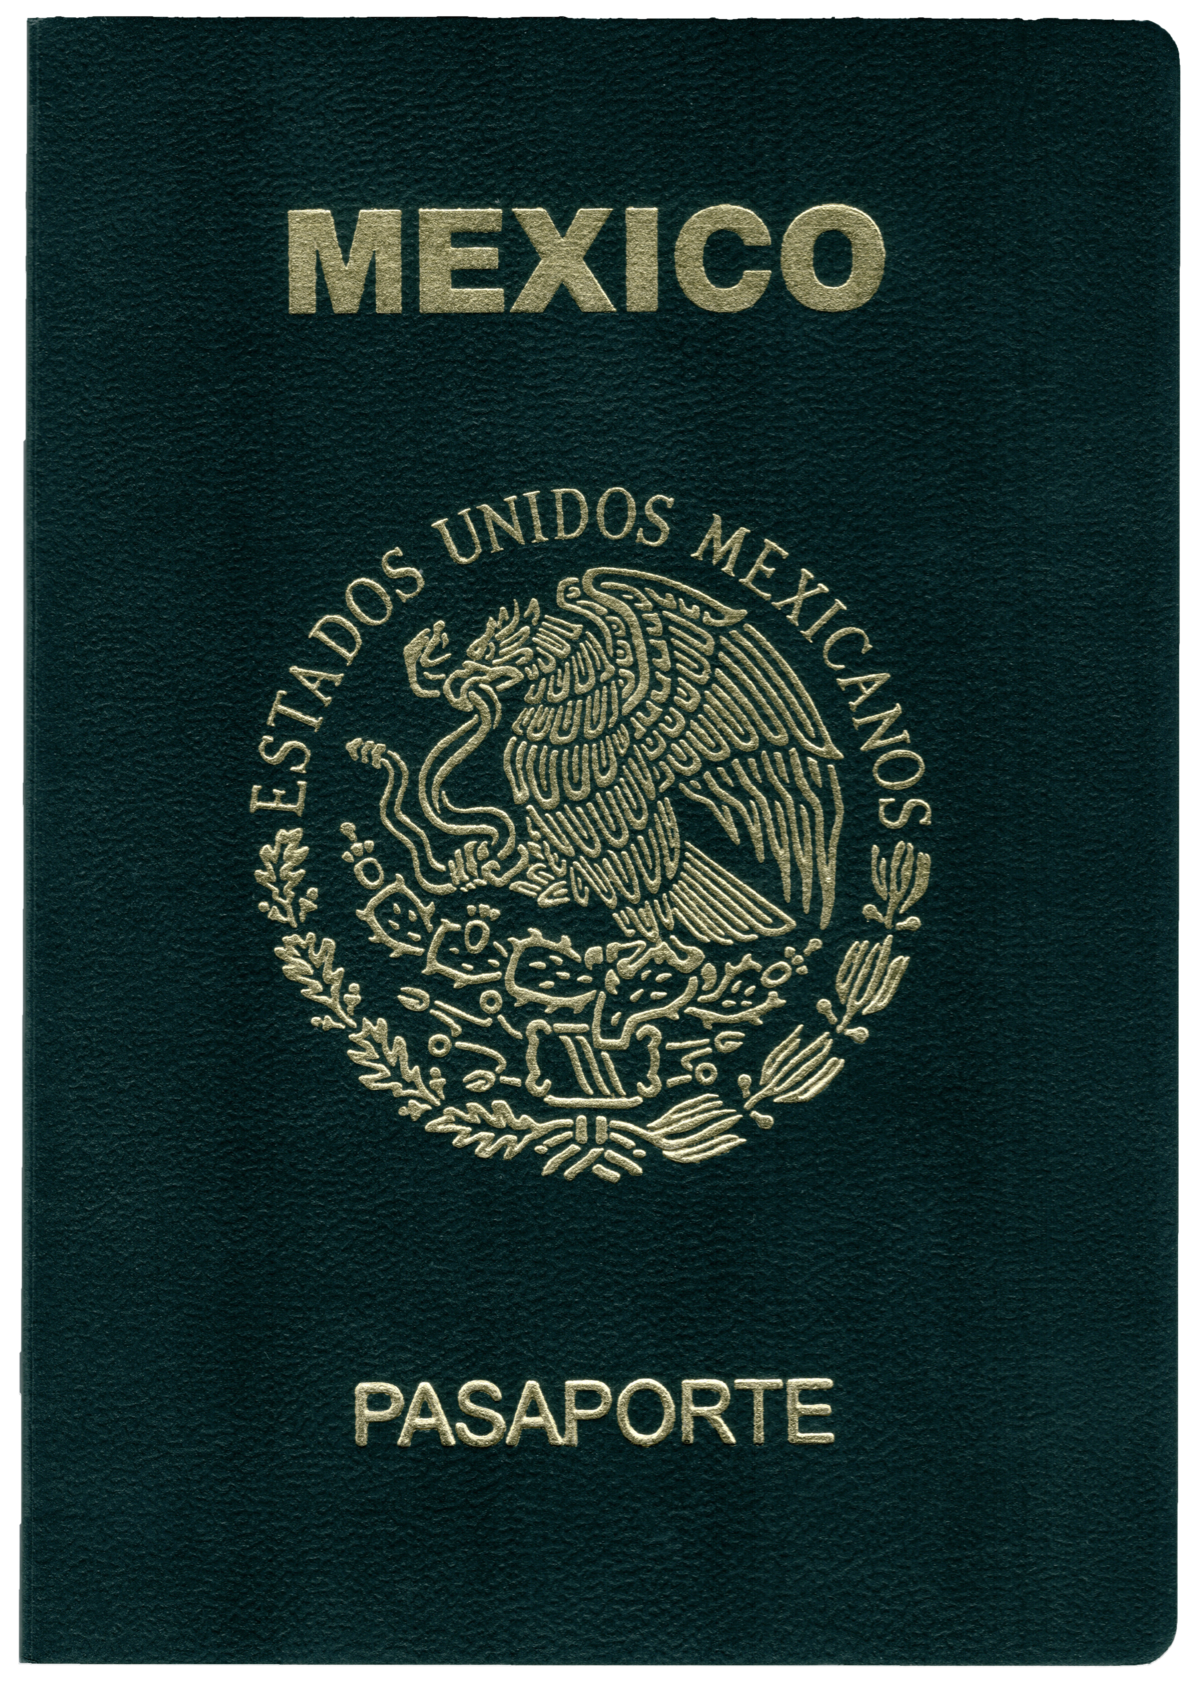 How much is a passport in mexico